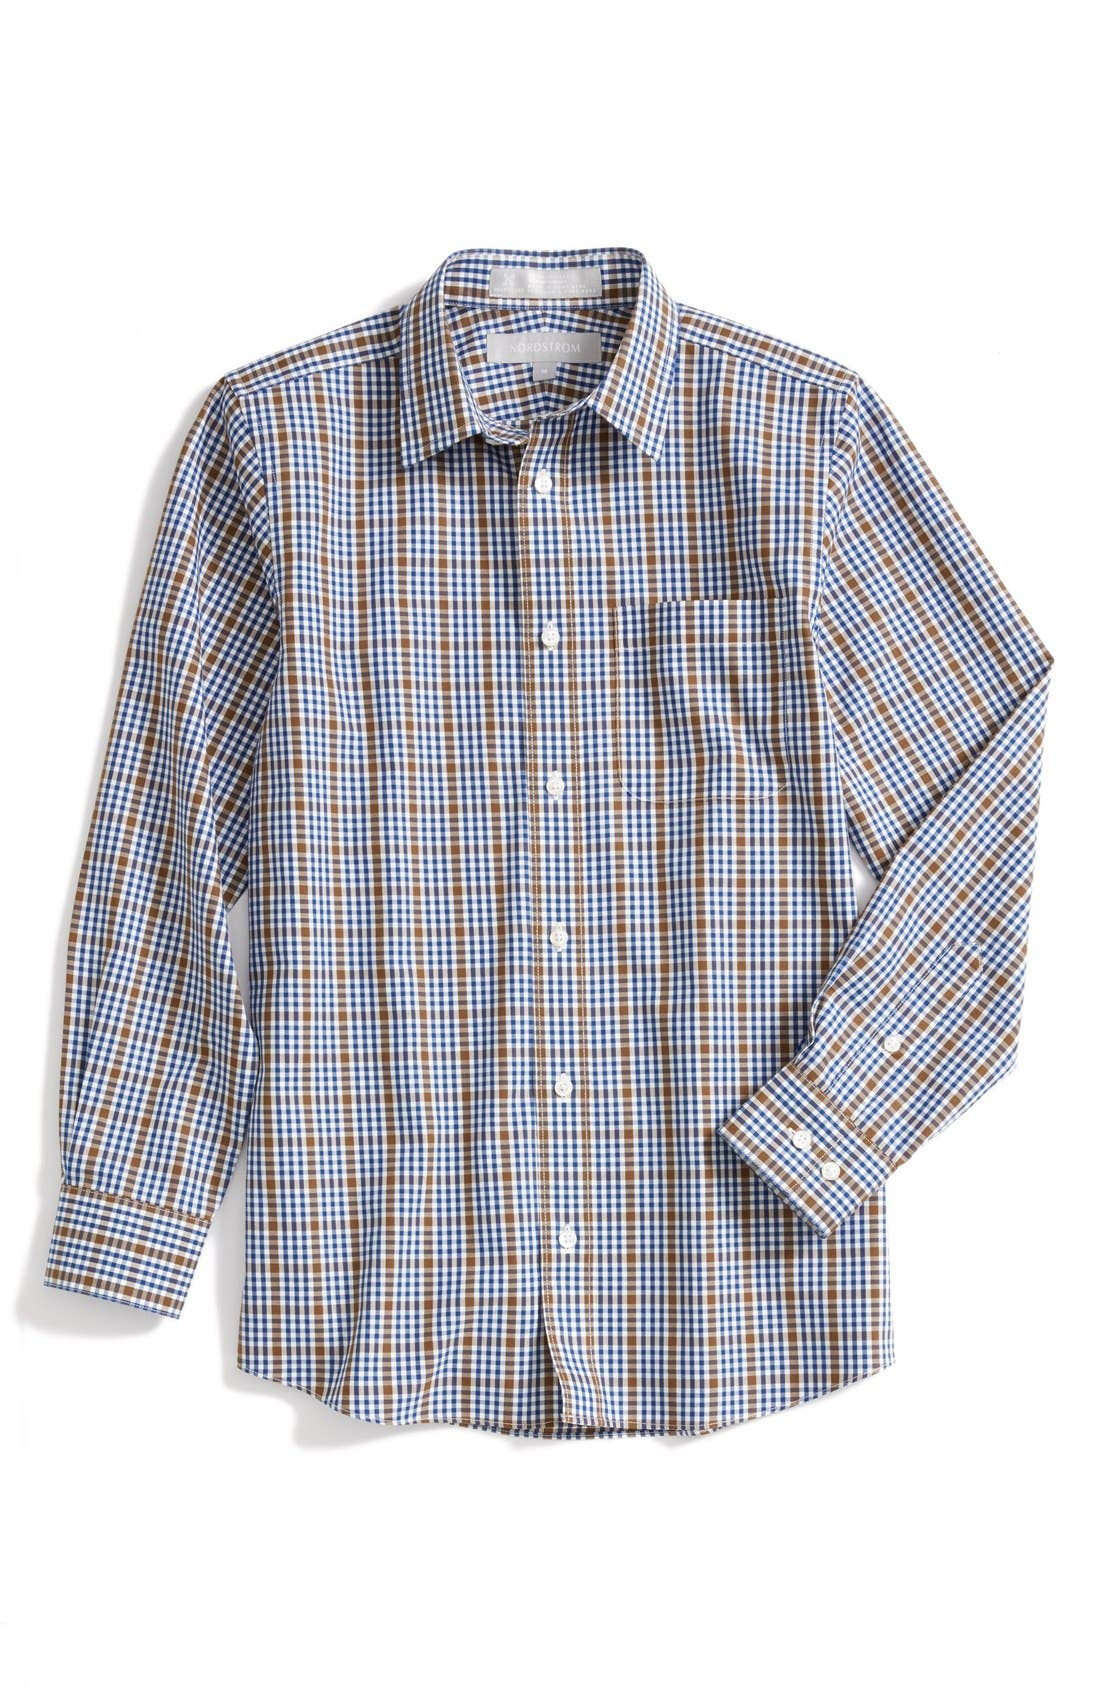 Main Image - Nordstrom Smartcare™ Dress Shirt (Little Boys & Big Boys)